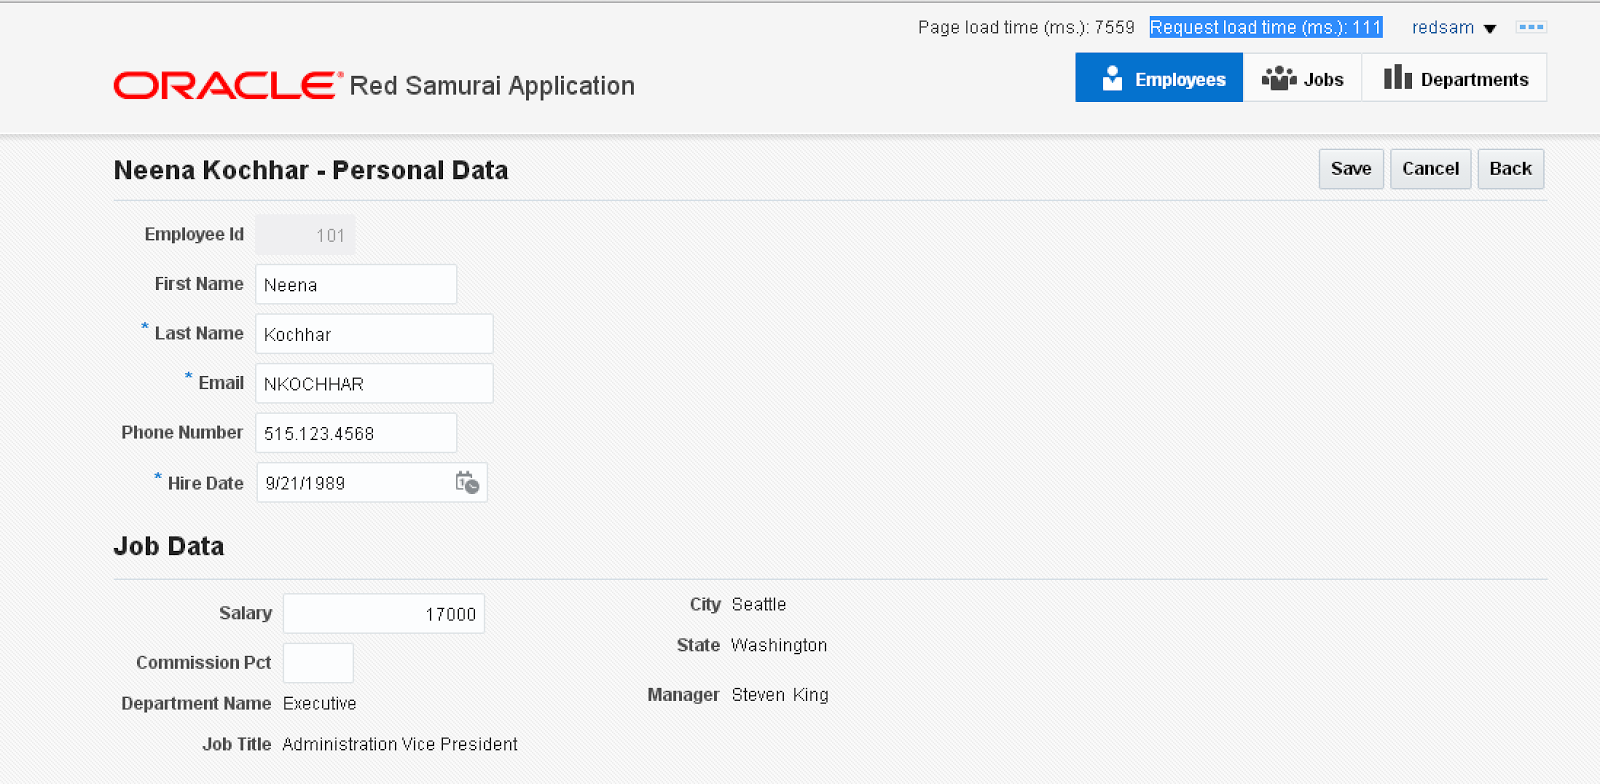 how to make synchronous ajax call in angularjs